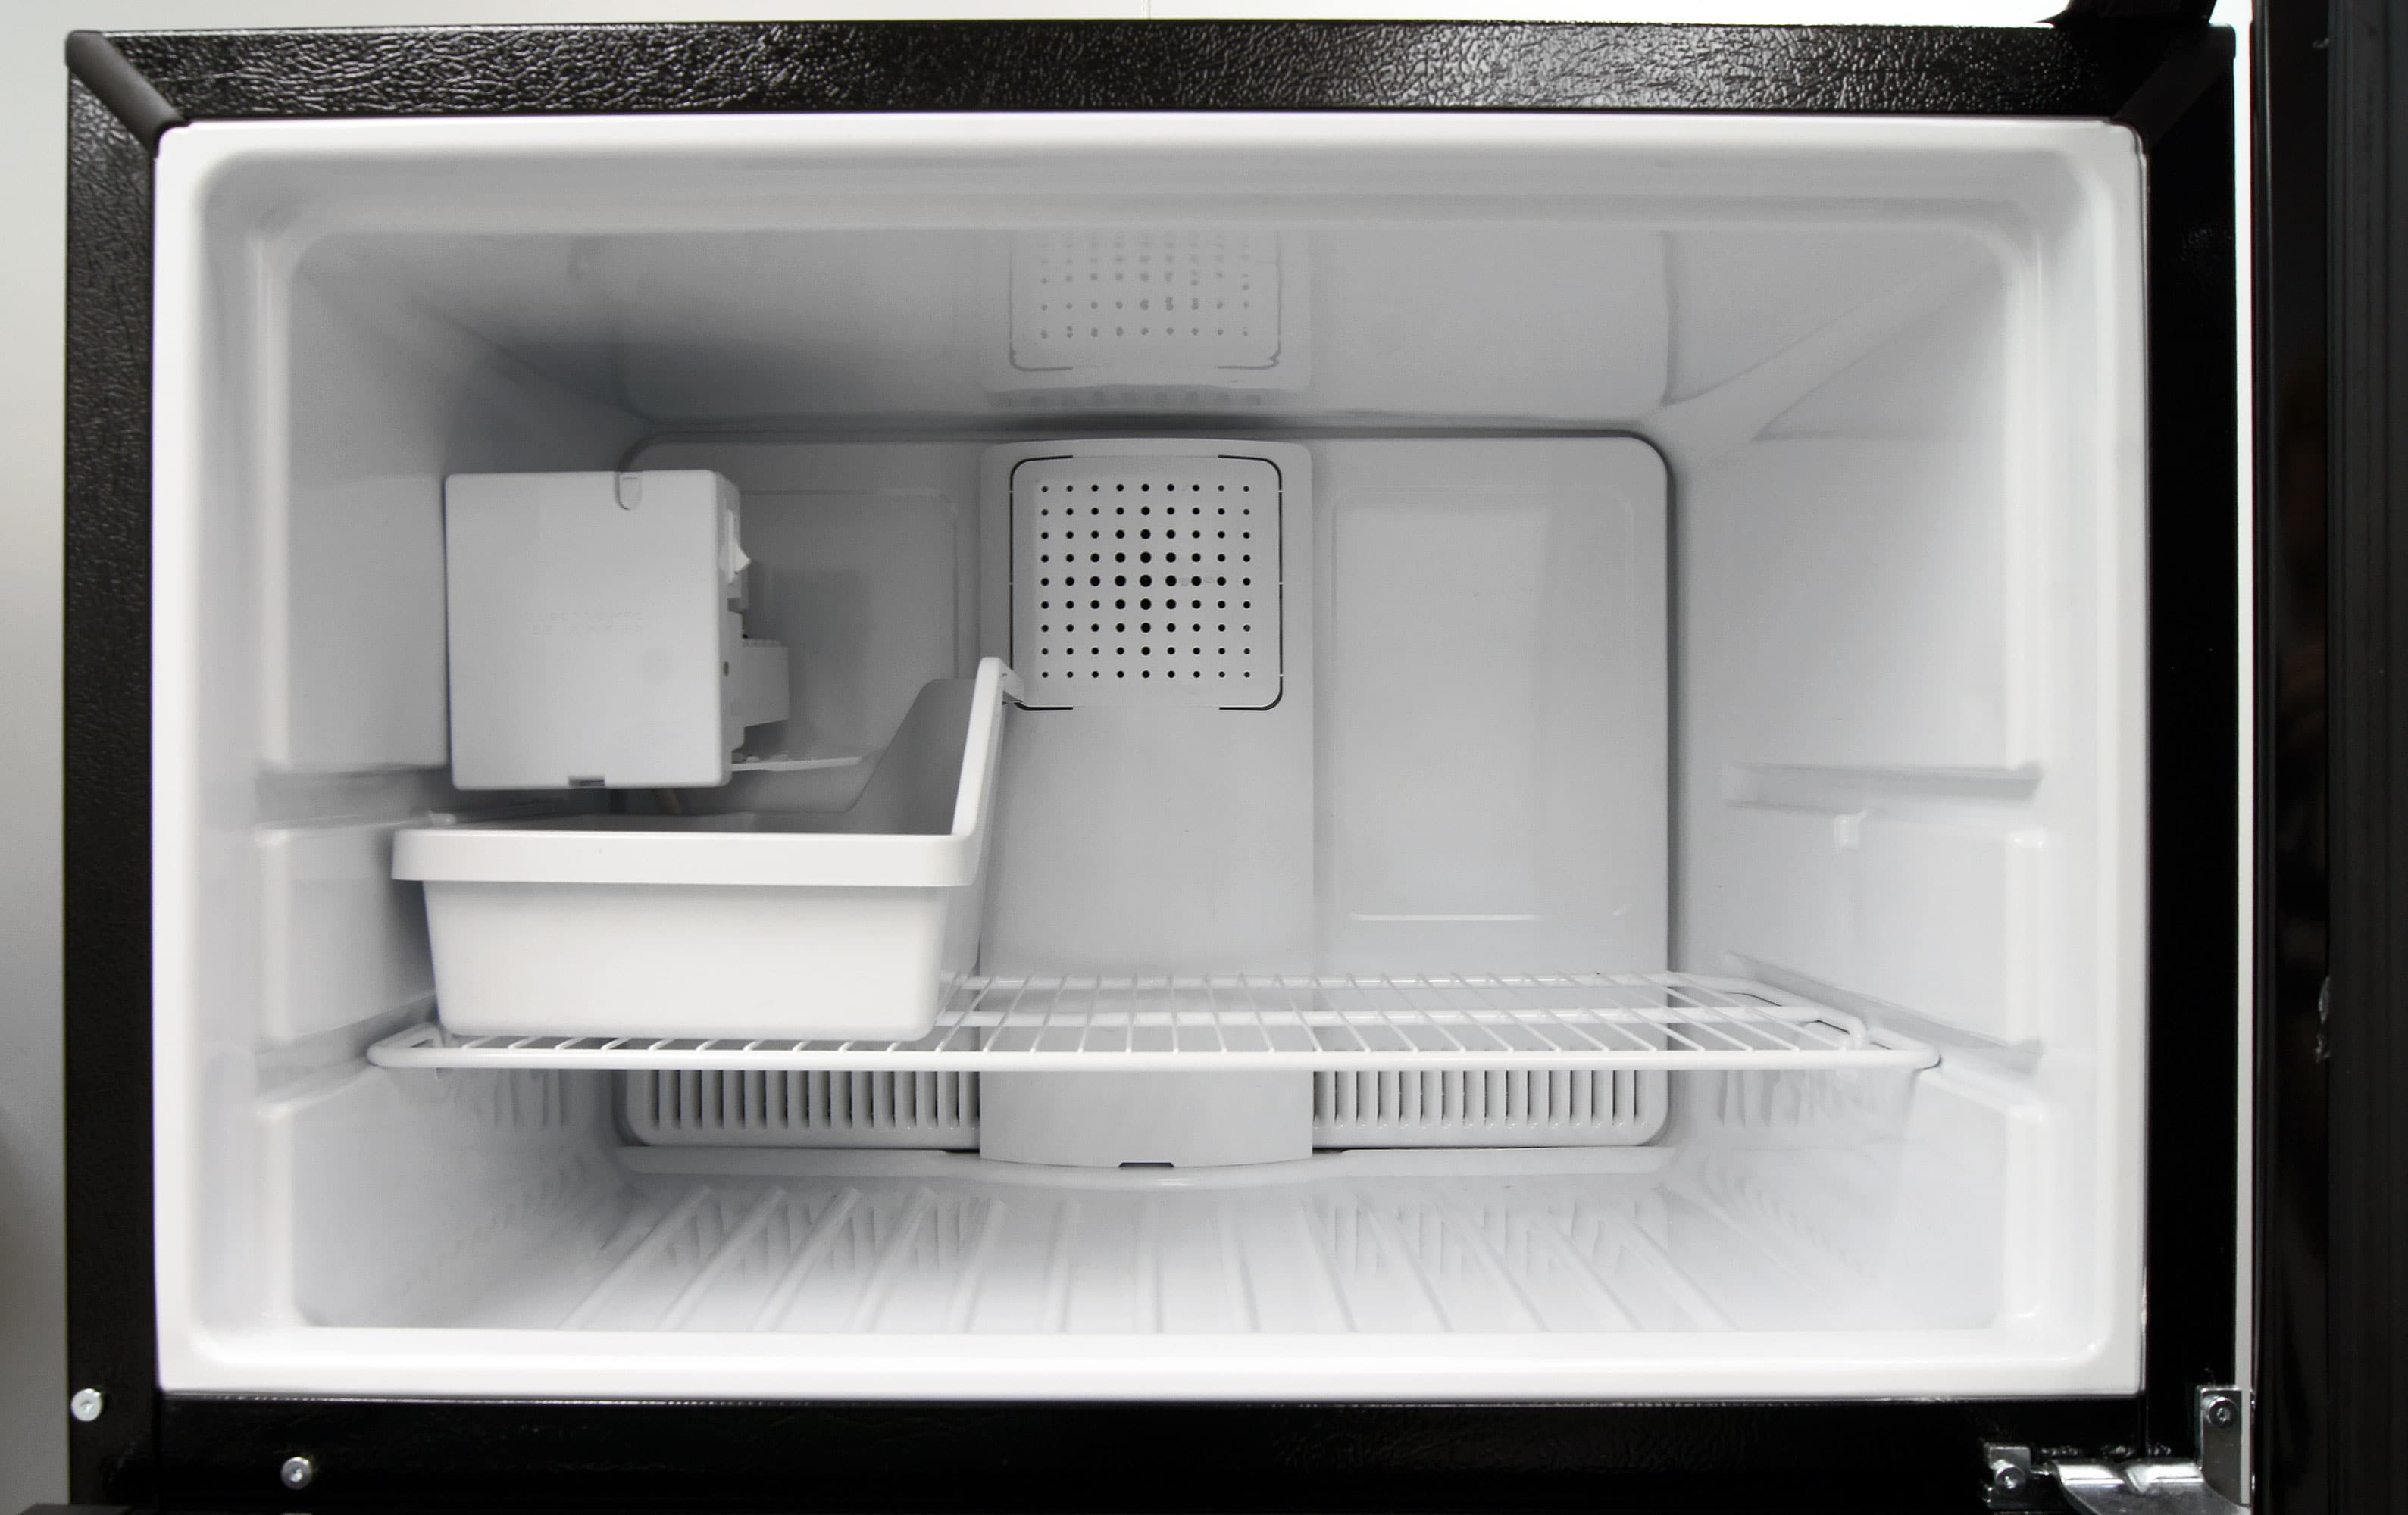 If you want to use the GE GIE16DGHBB's icemaker, you'll have to keep the freezer shelf in its lower slot.